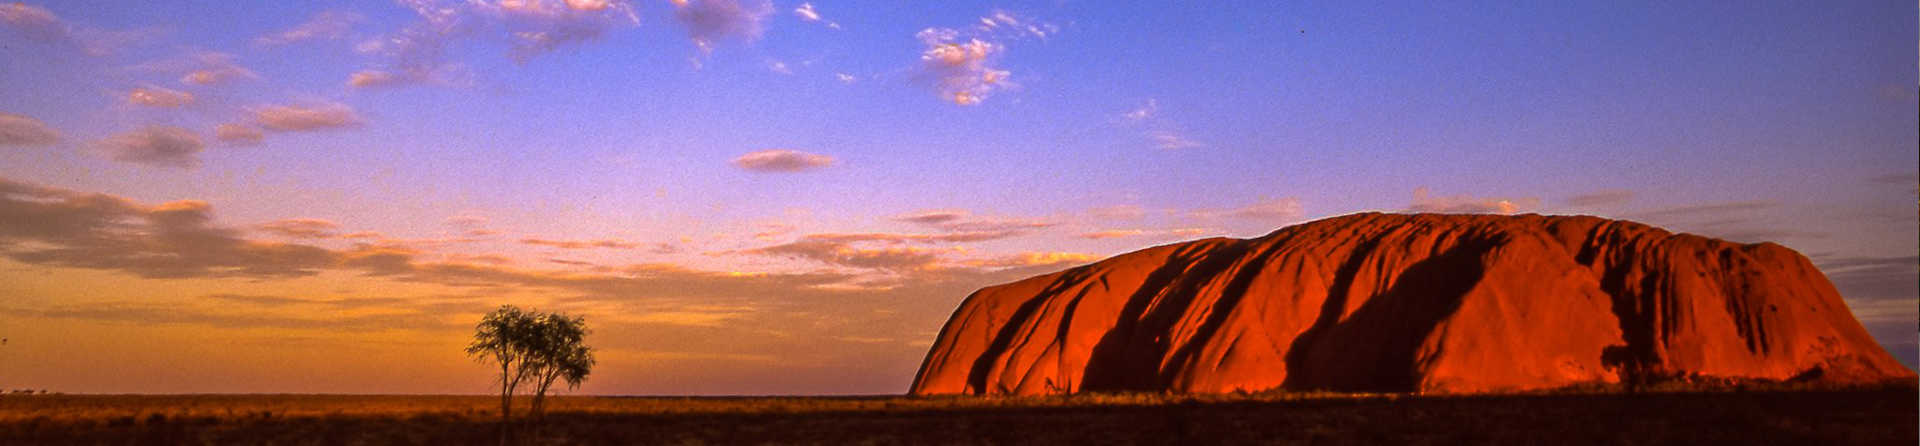 What is interesting about Uluru?